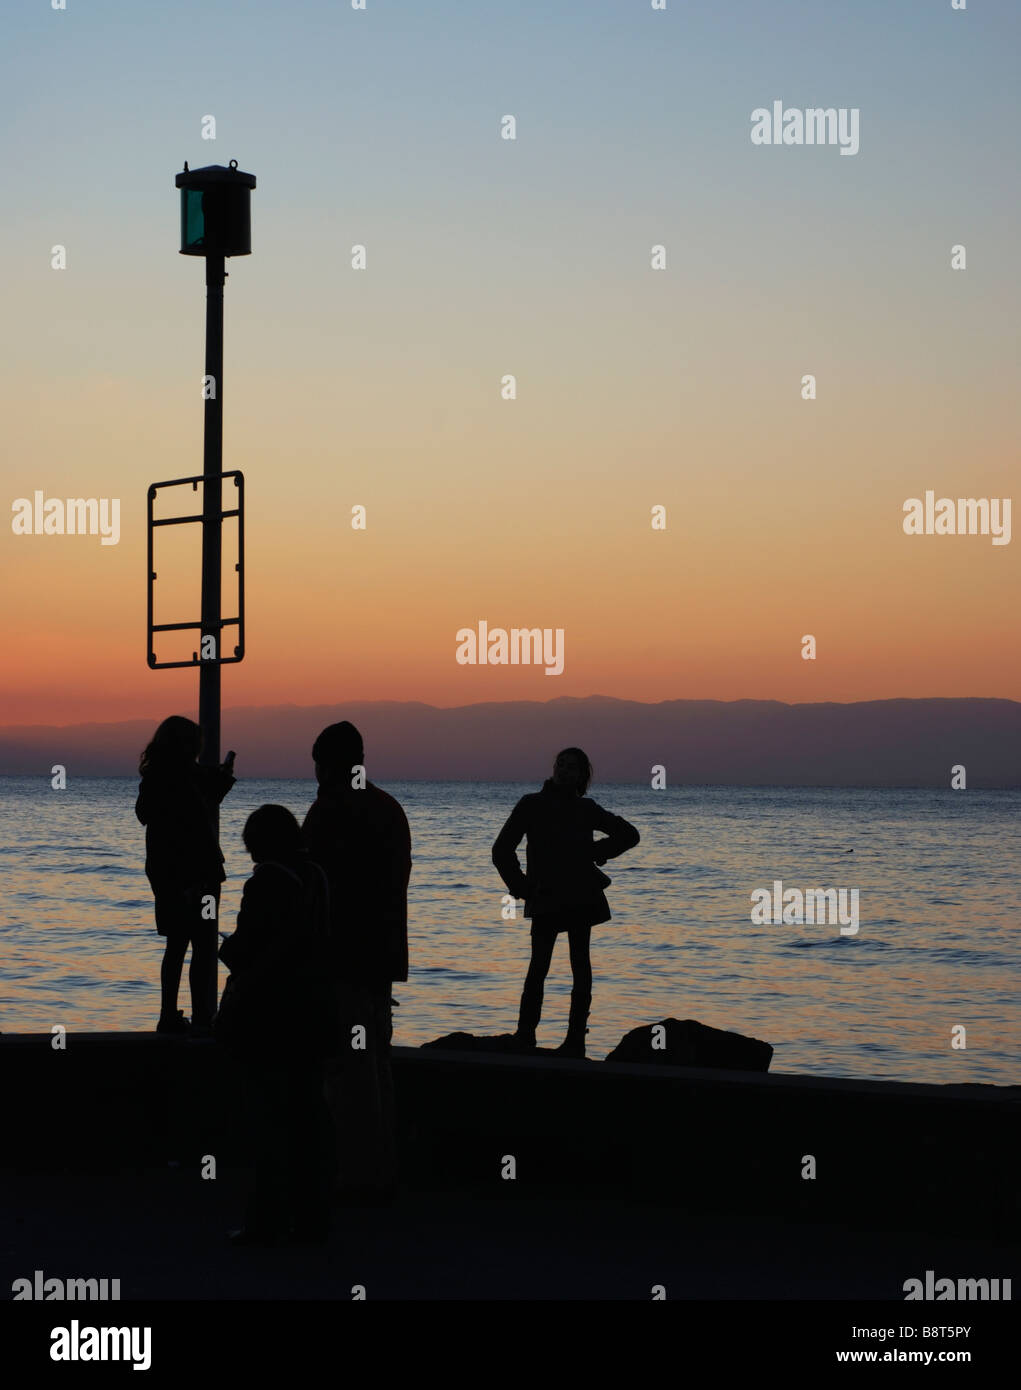 View of the sunset over Lac Leman as viewed from Lausanne, Switzerland. Unrecognisable family in the foreground - Stock Image